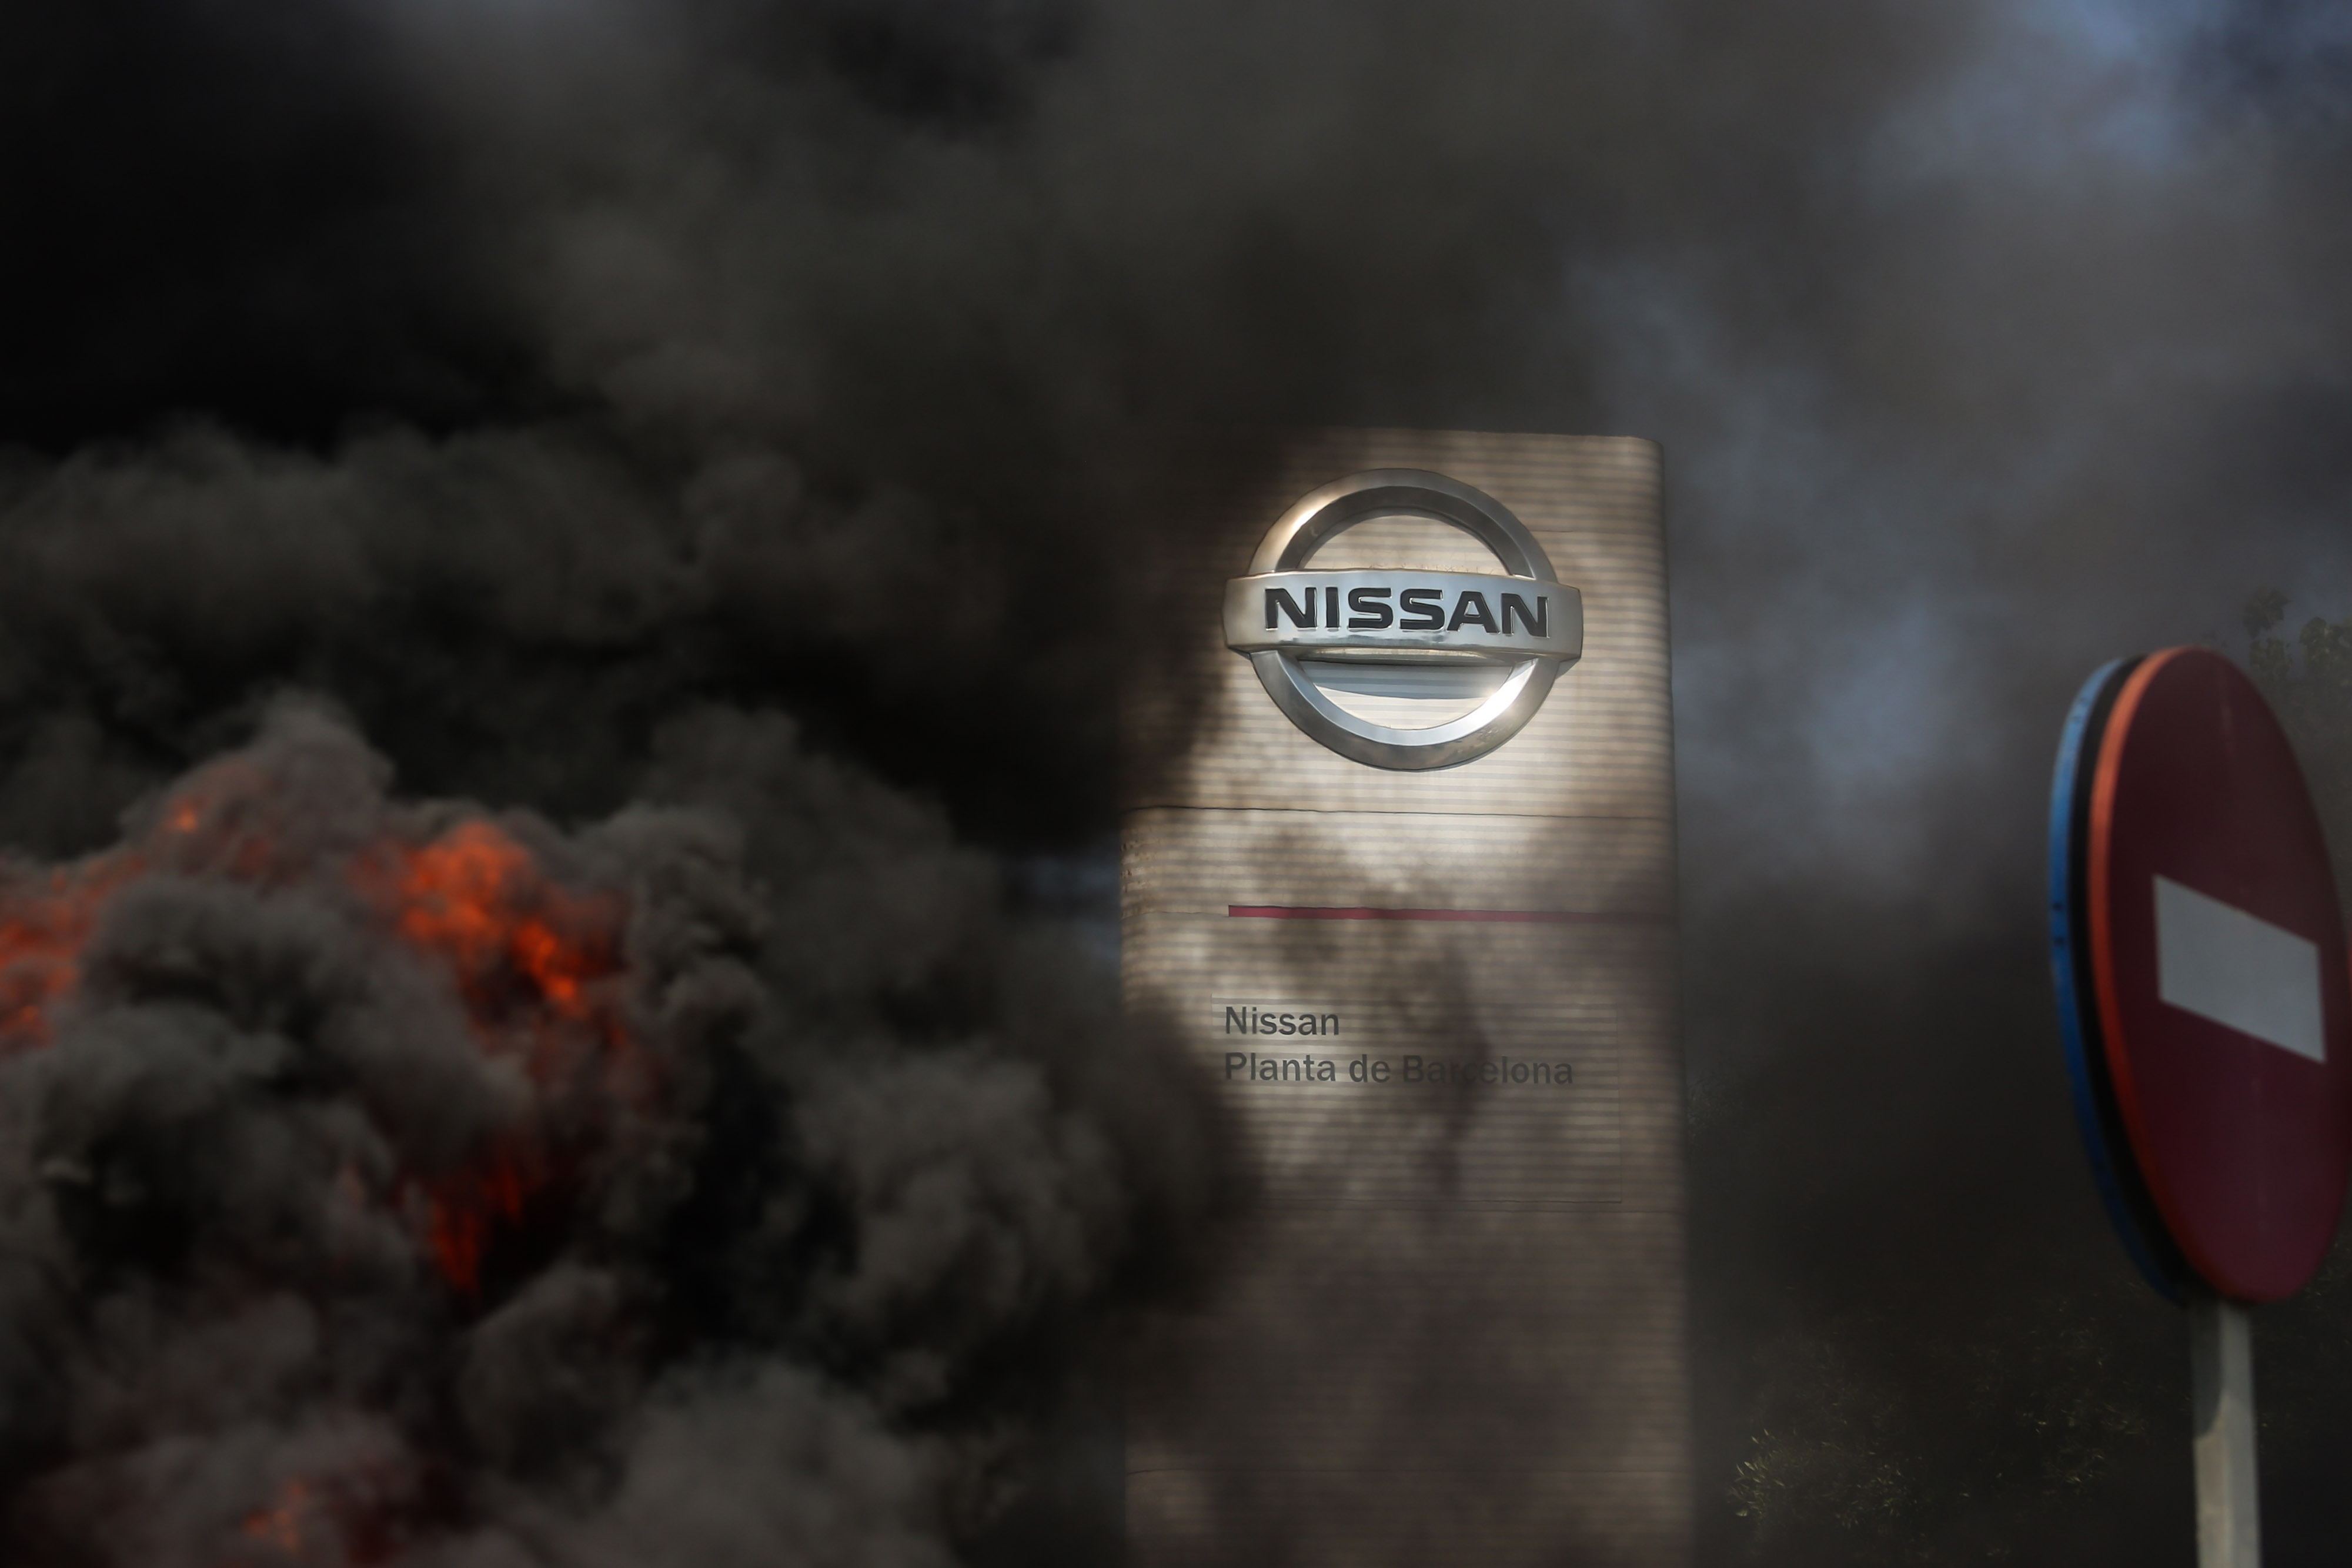 Nissan Motor has decided to close its factory in Spain's Barcelona from December, resulting in the loss of about 3,000 jobs as part of a worldwide restructuring plan. As demonstrators protested outside the company's factory against the closure, they burnt tires which caused smoke. (Bloomberg)